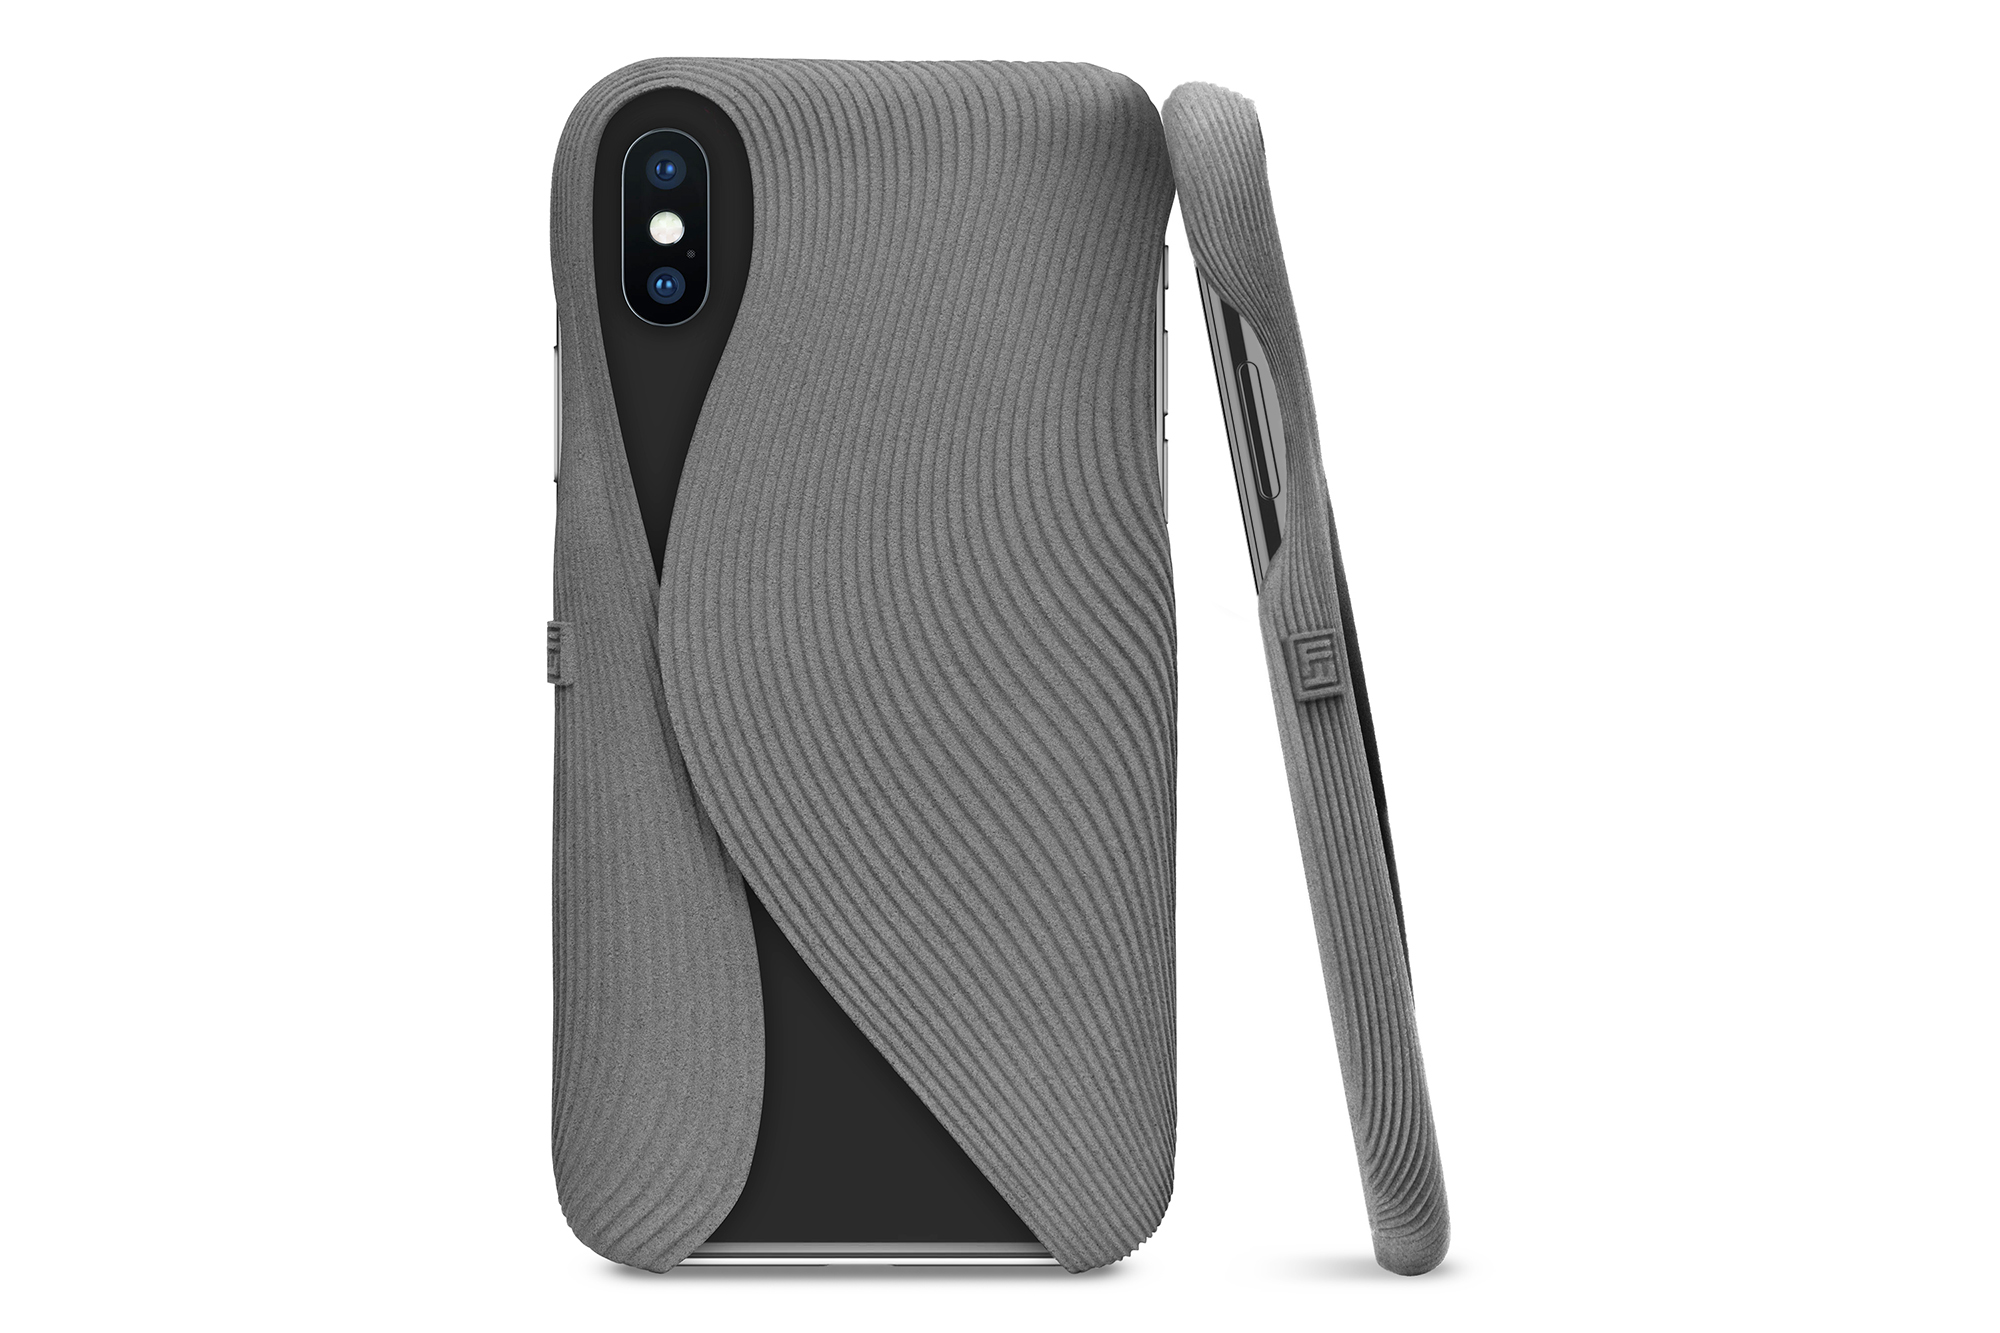 FOLD Case for iPhone X, Design by Matthijs Kok for Freshfiber